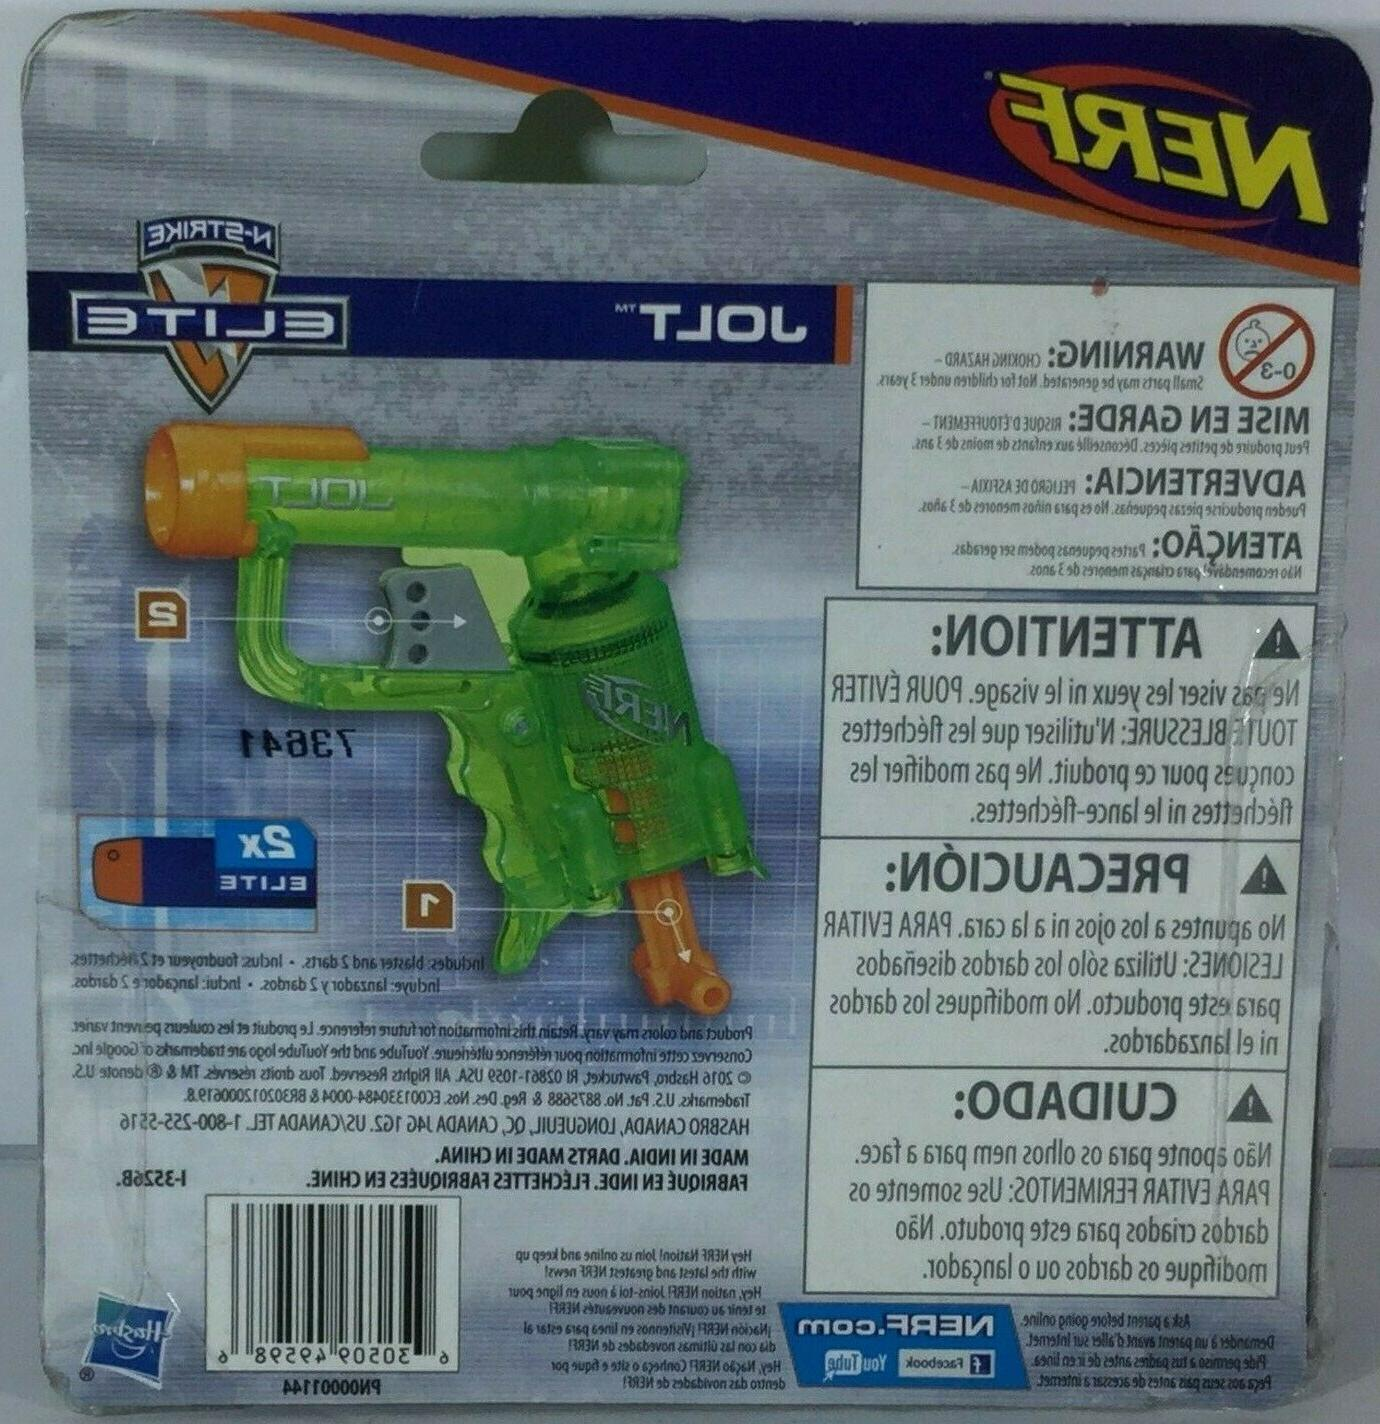 Nerf Soft Bullets, in